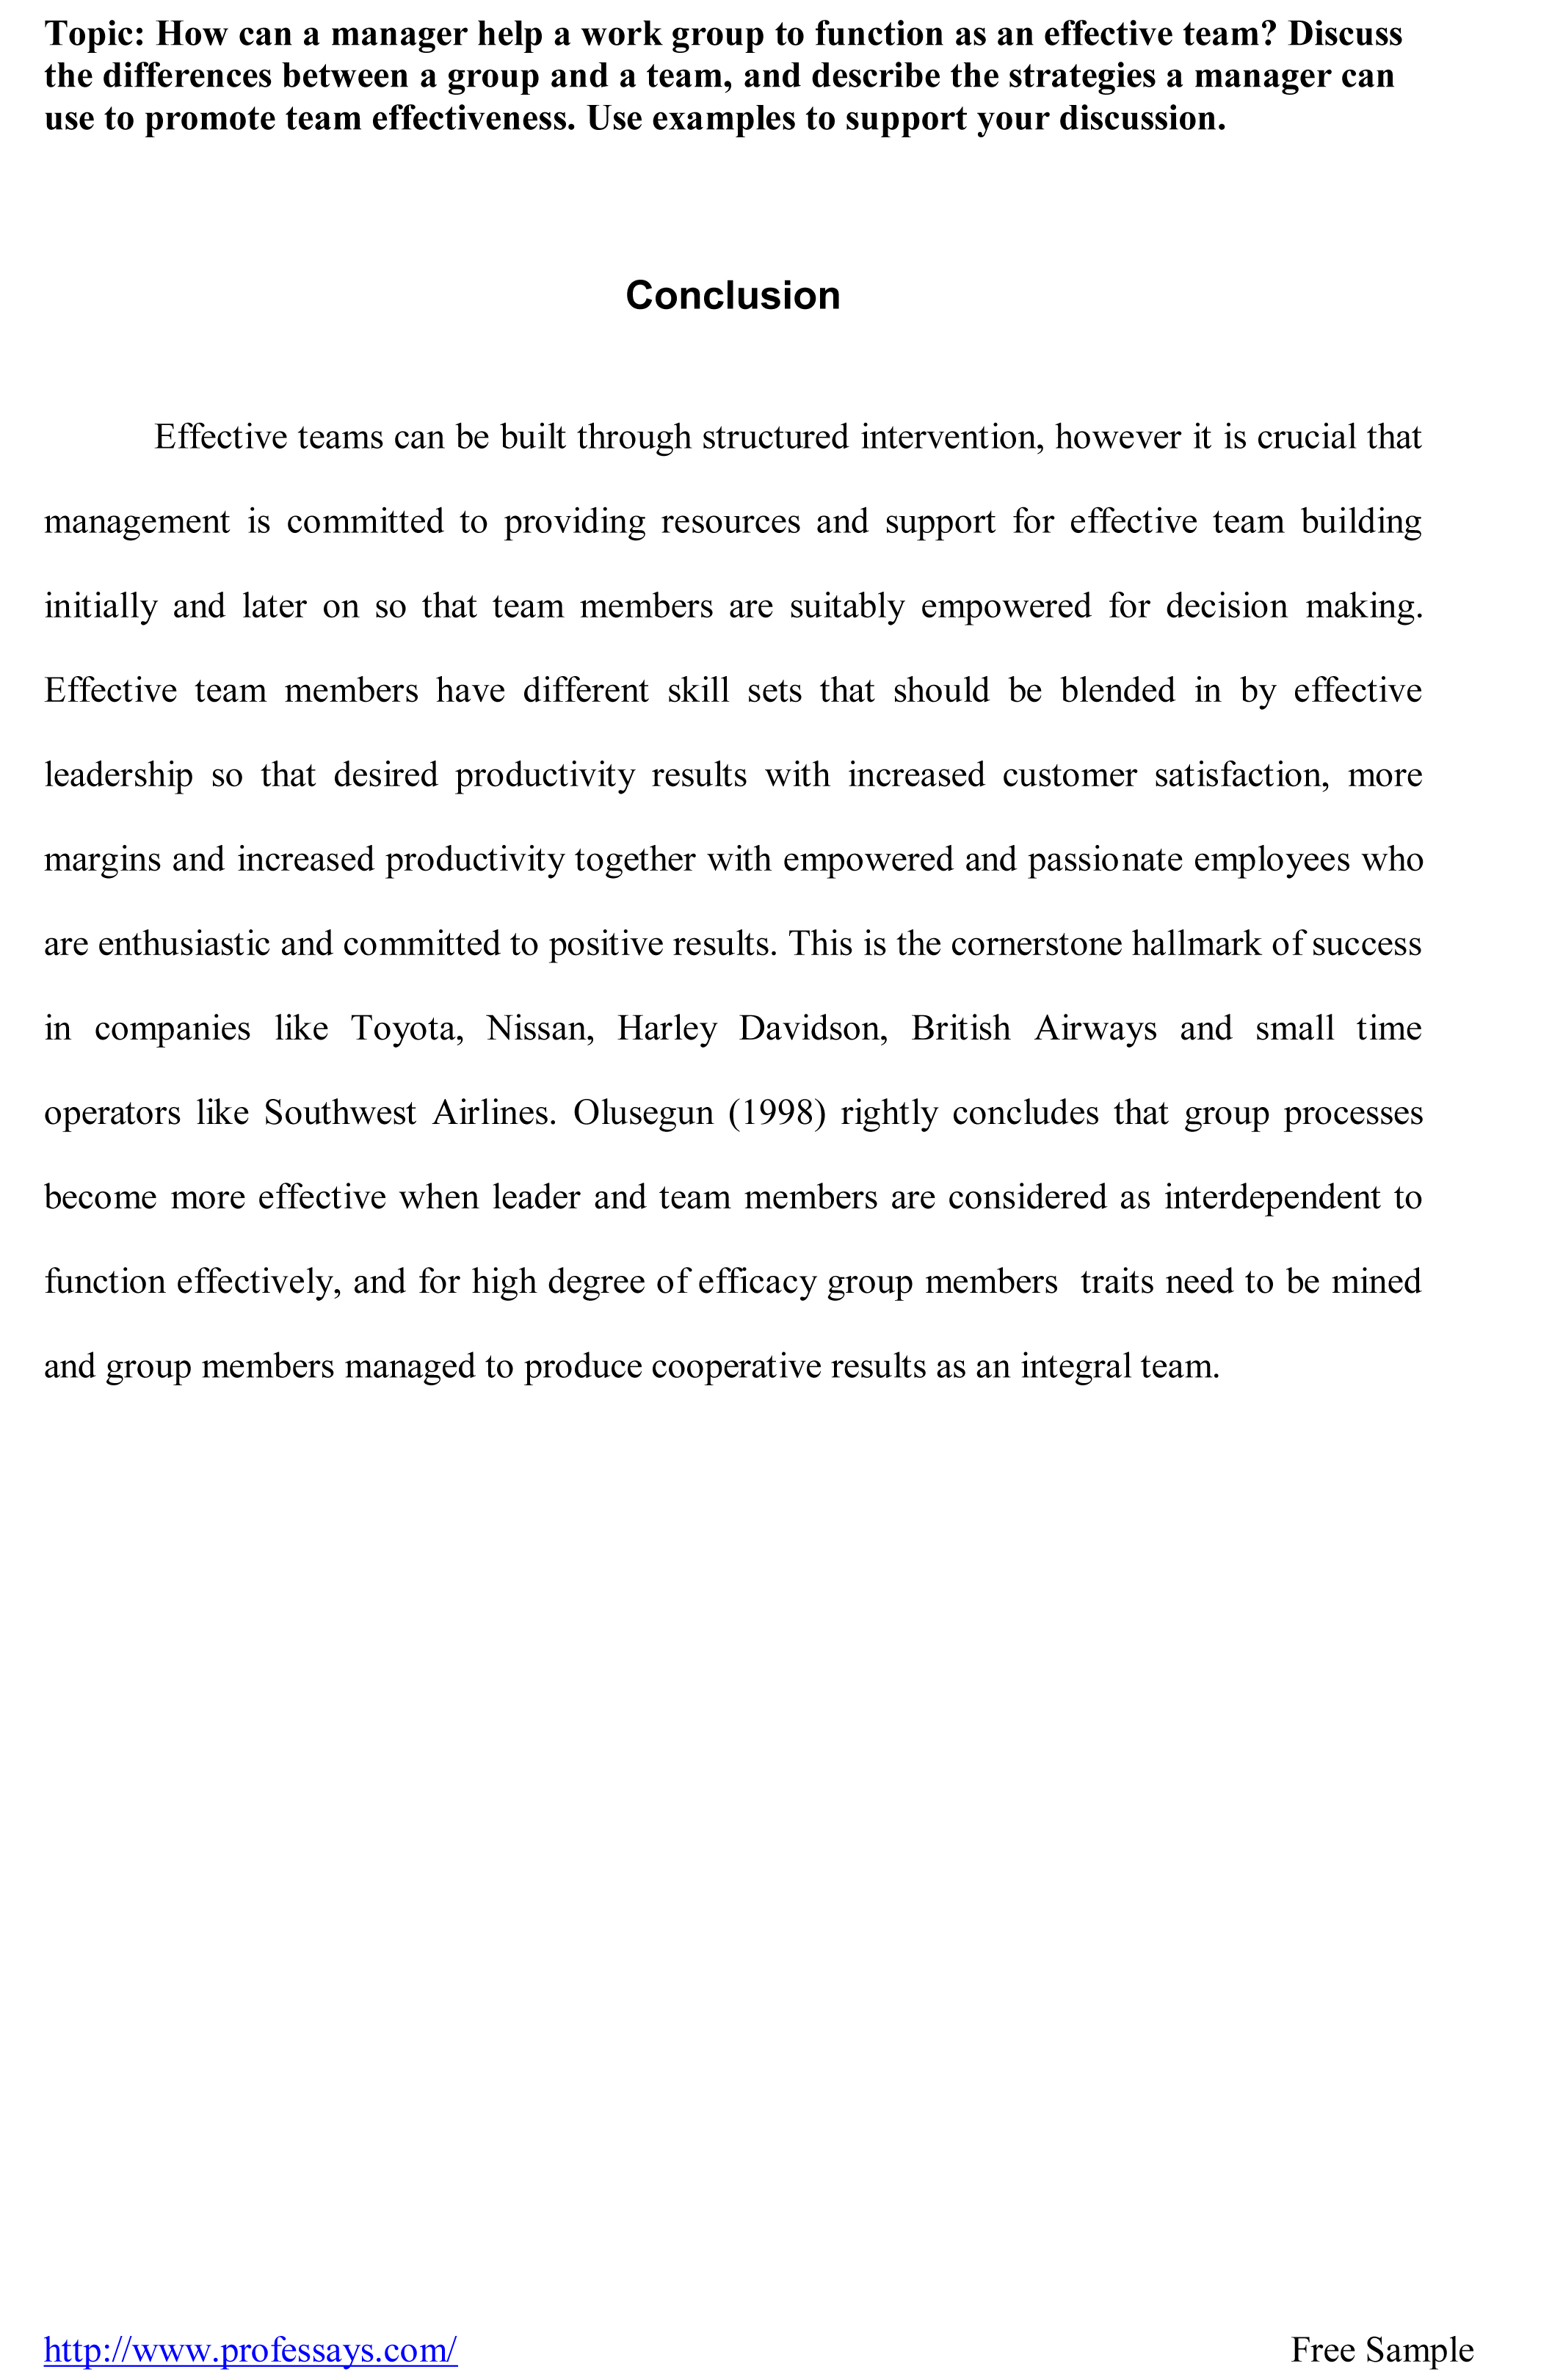 002 Conclusion Help Research Paper Sample For Amazing Full